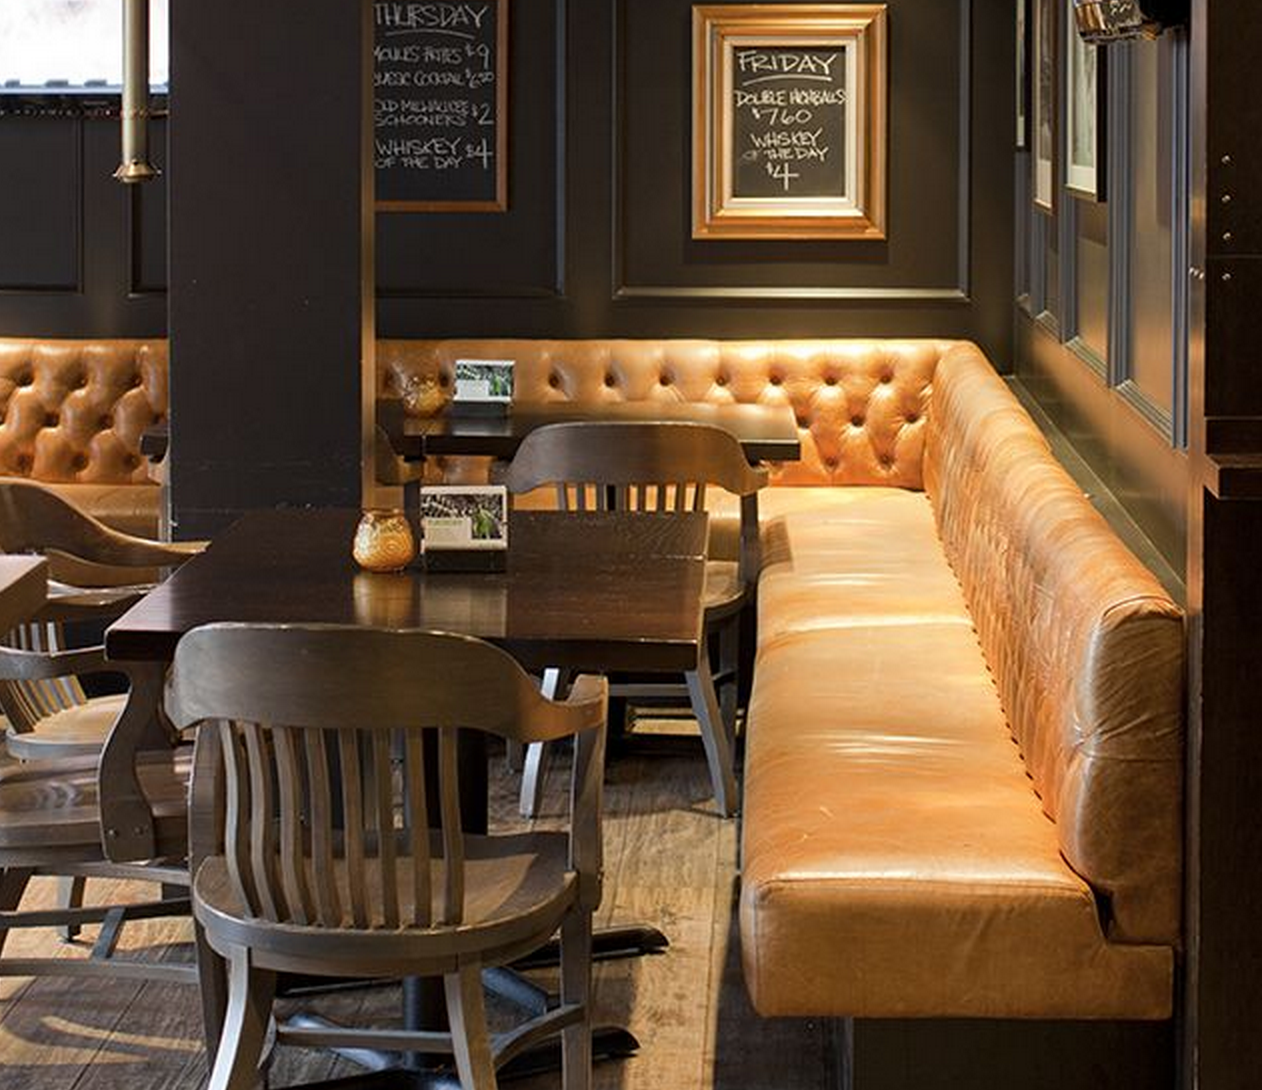 Cafe Banquette Seating: Pin By Jake Brennan On Amanda's Breakfast